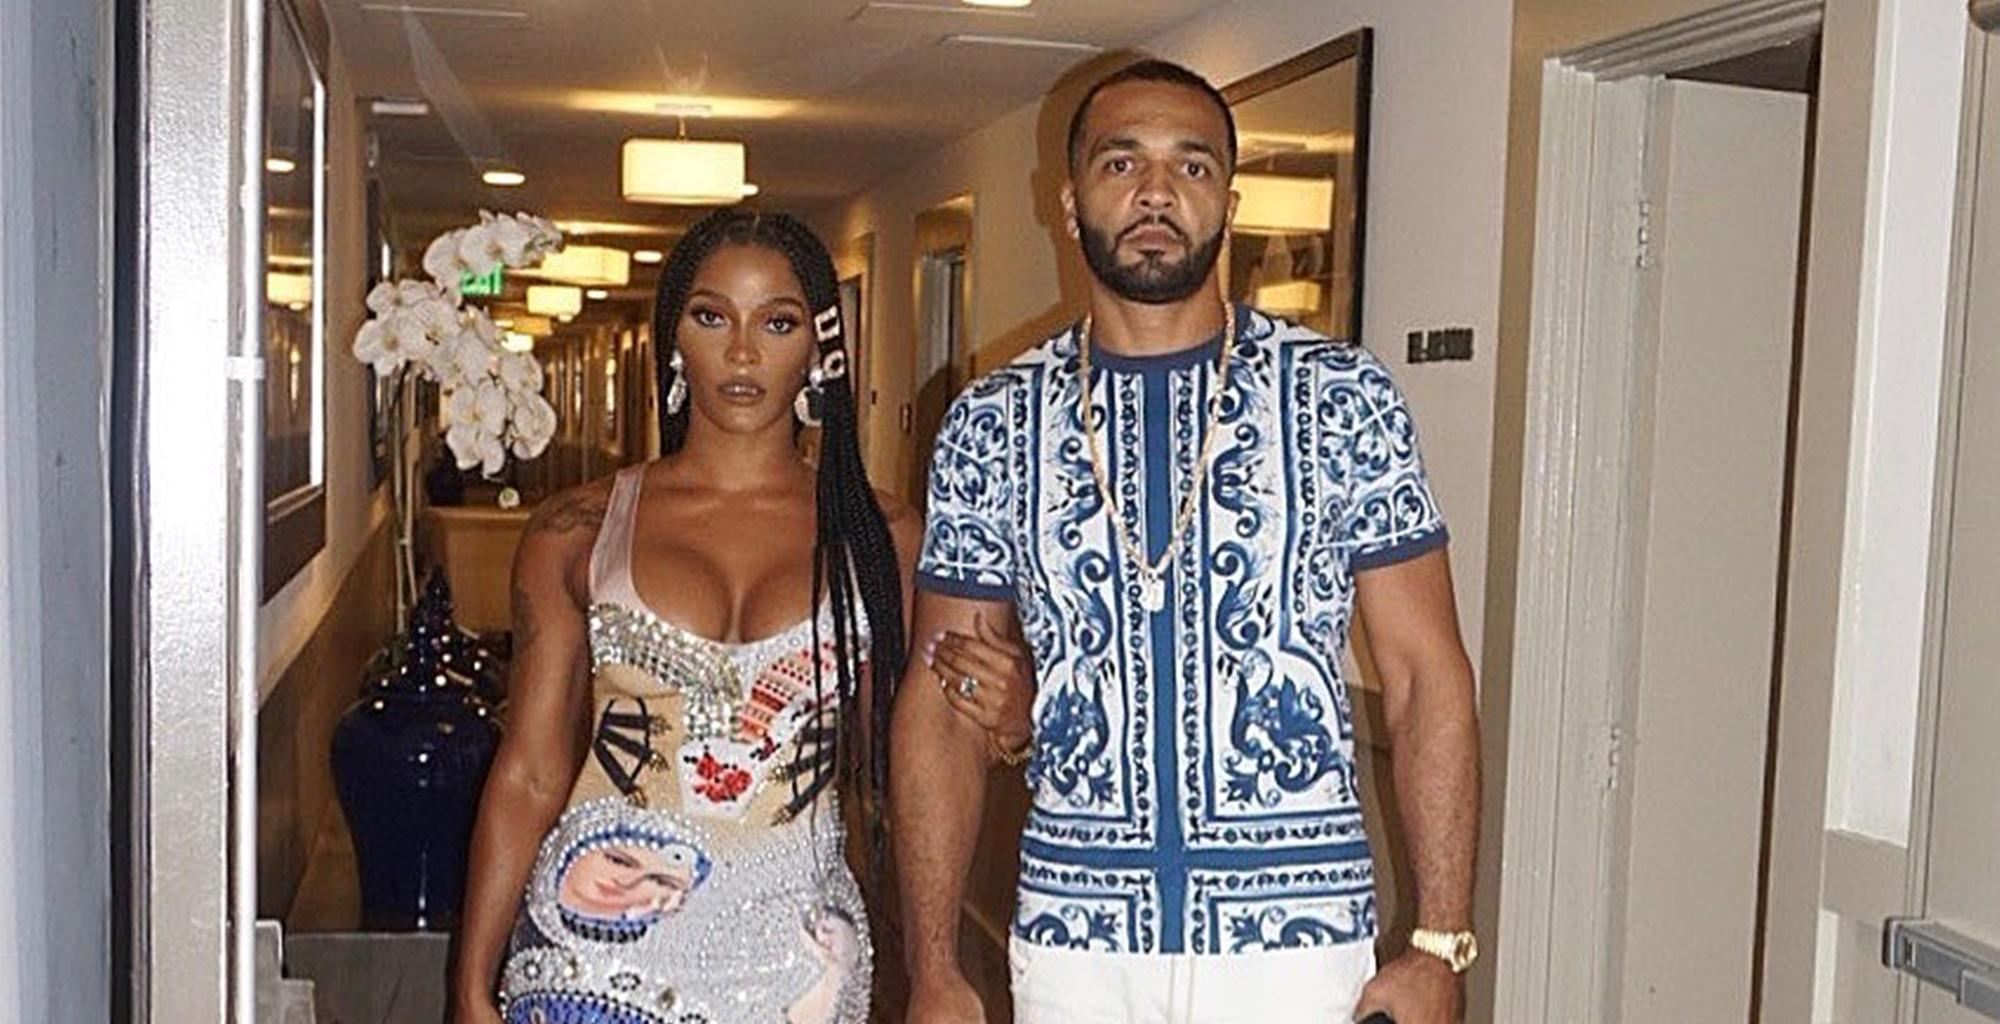 Joseline Hernandez Looks Hurt, Sad, And Is Missing Bonnie Bella In New Video As She Slams Stevie J For Getting Custody Of Their Daughter -- Producer Is Busy Enjoying Life With The Child